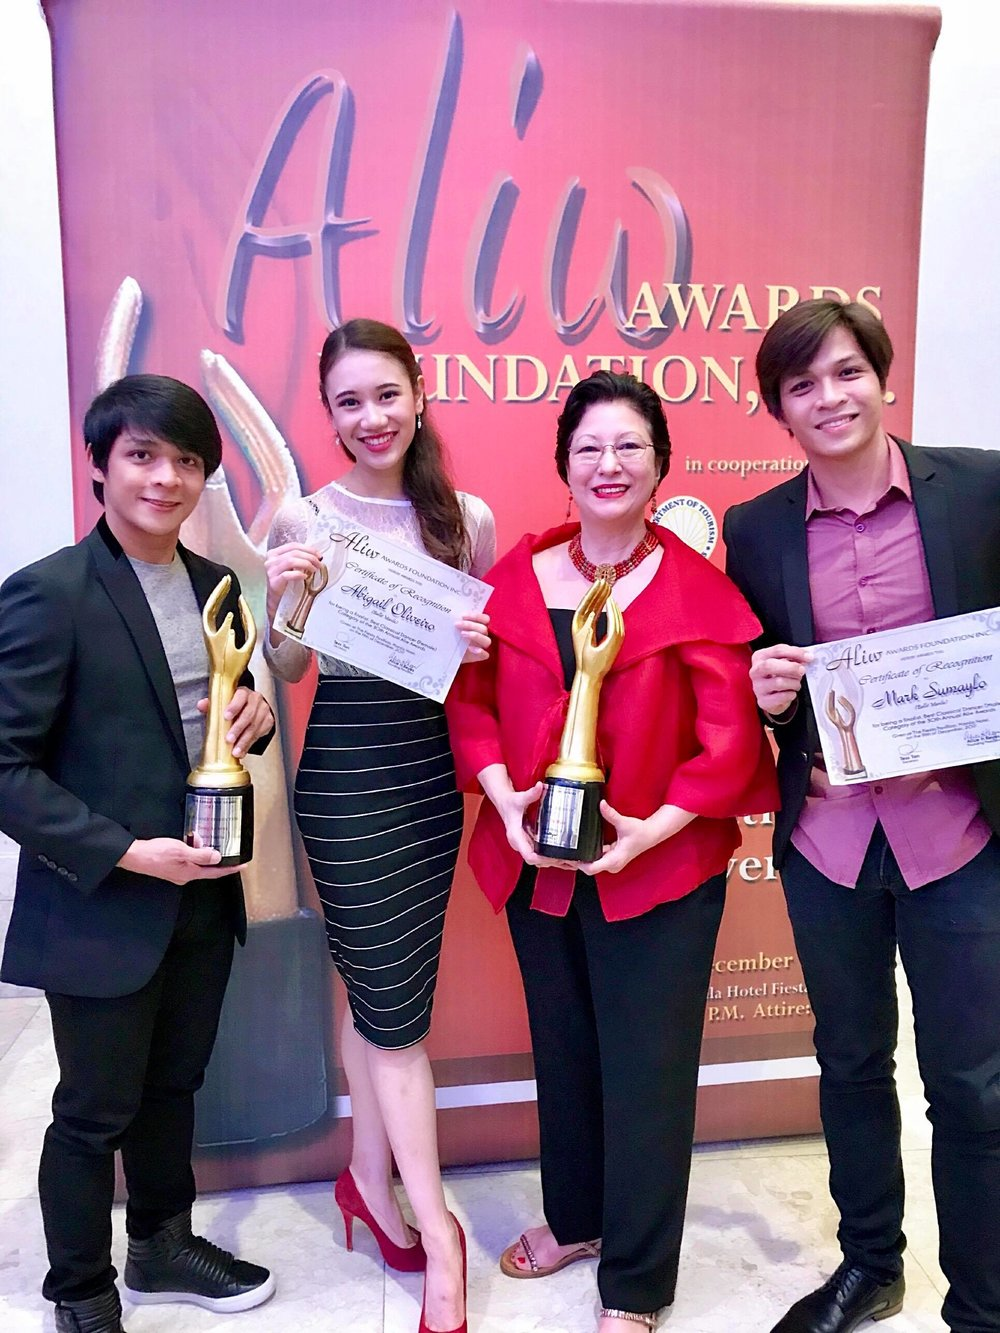 Francisco is joined by soloist Abigail Oliveiro, Project Ballet Futures managing director Sylvia Lichauco and soloist Mark Sumaylo after receiving the Aliw trophy. Oliveiro and Sumaylo also received certificates as Best Classical Dancer finalists.